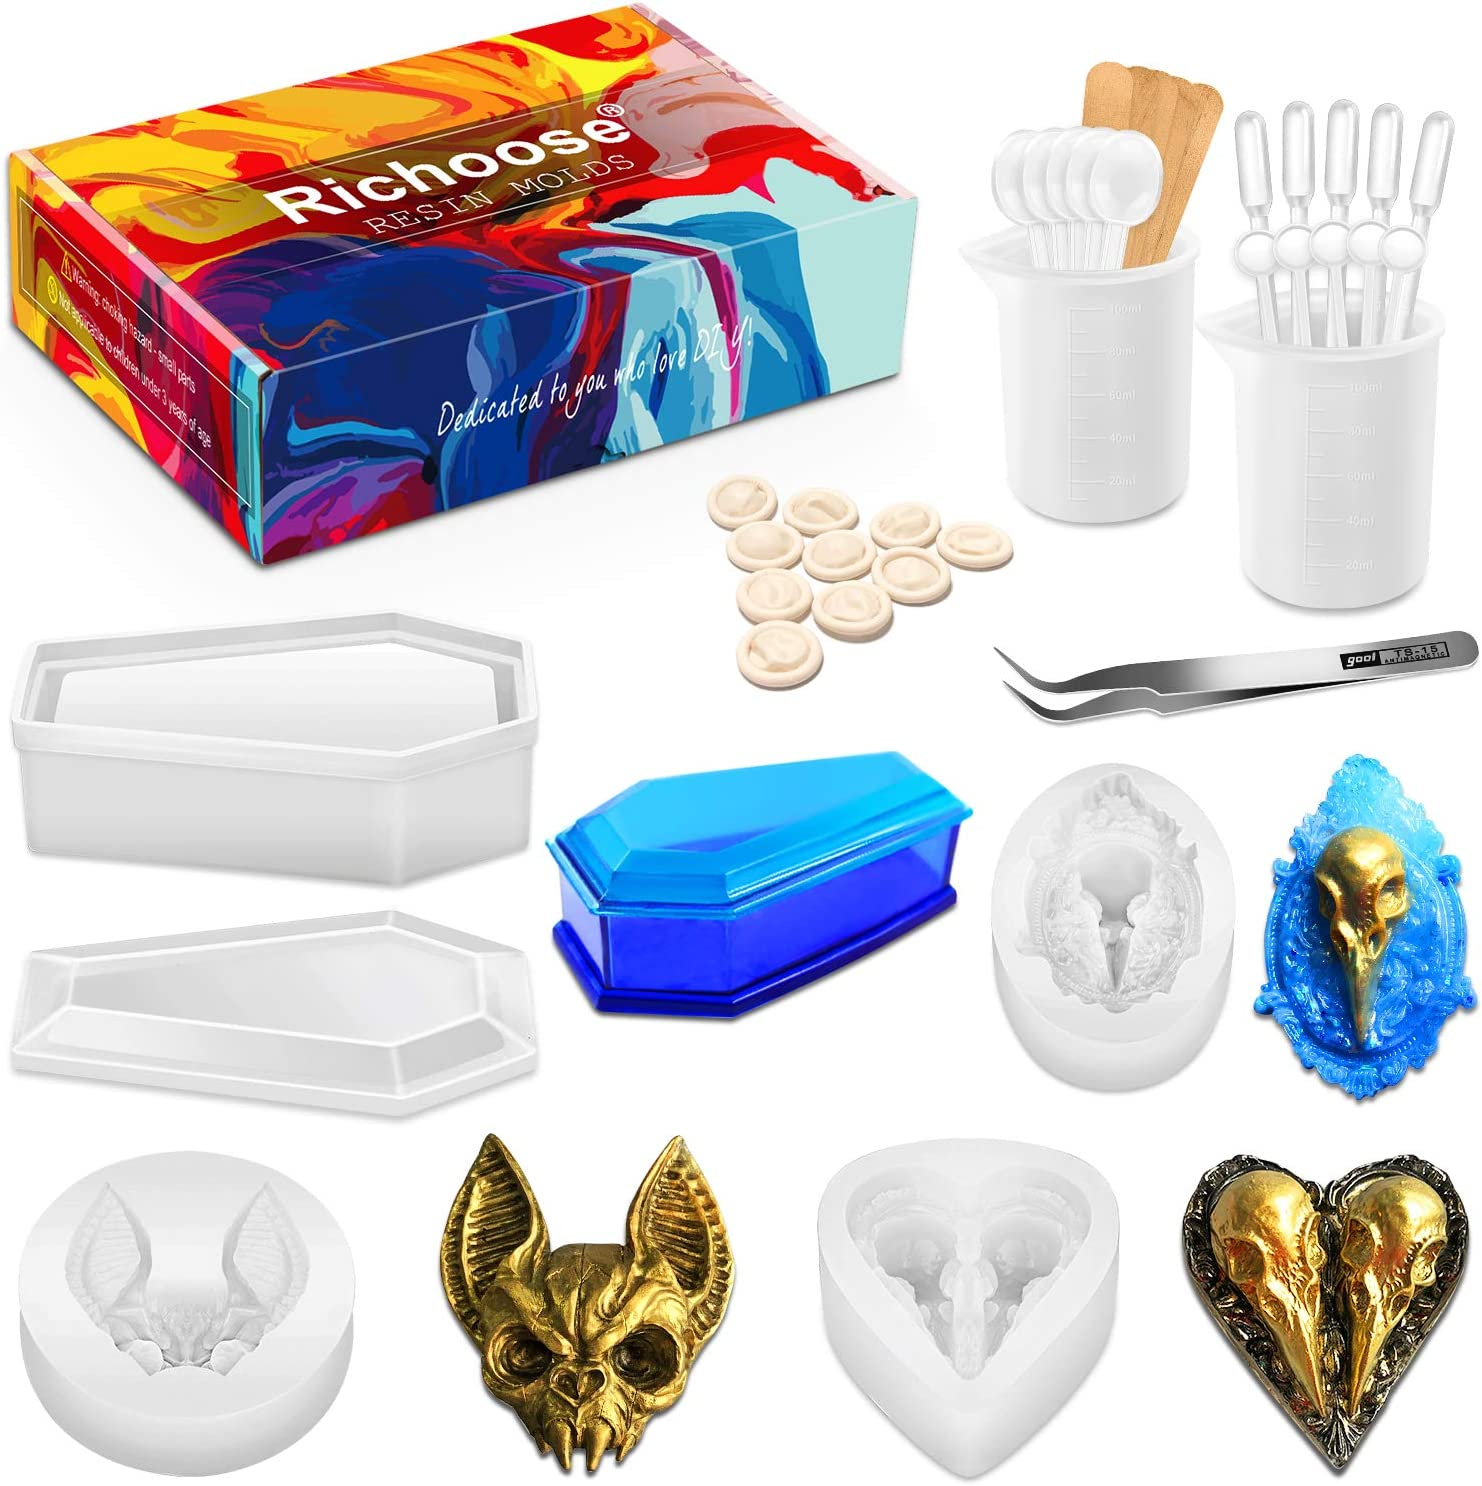 Richoose 38Pcs Resin Silicone Molds Set, Vampire Coffin Casting Storage Box Mold with Including Crow Bat Head Crystal Epoxy Resin Mould and Tool kit for DIY Craft Jewelry Halloween